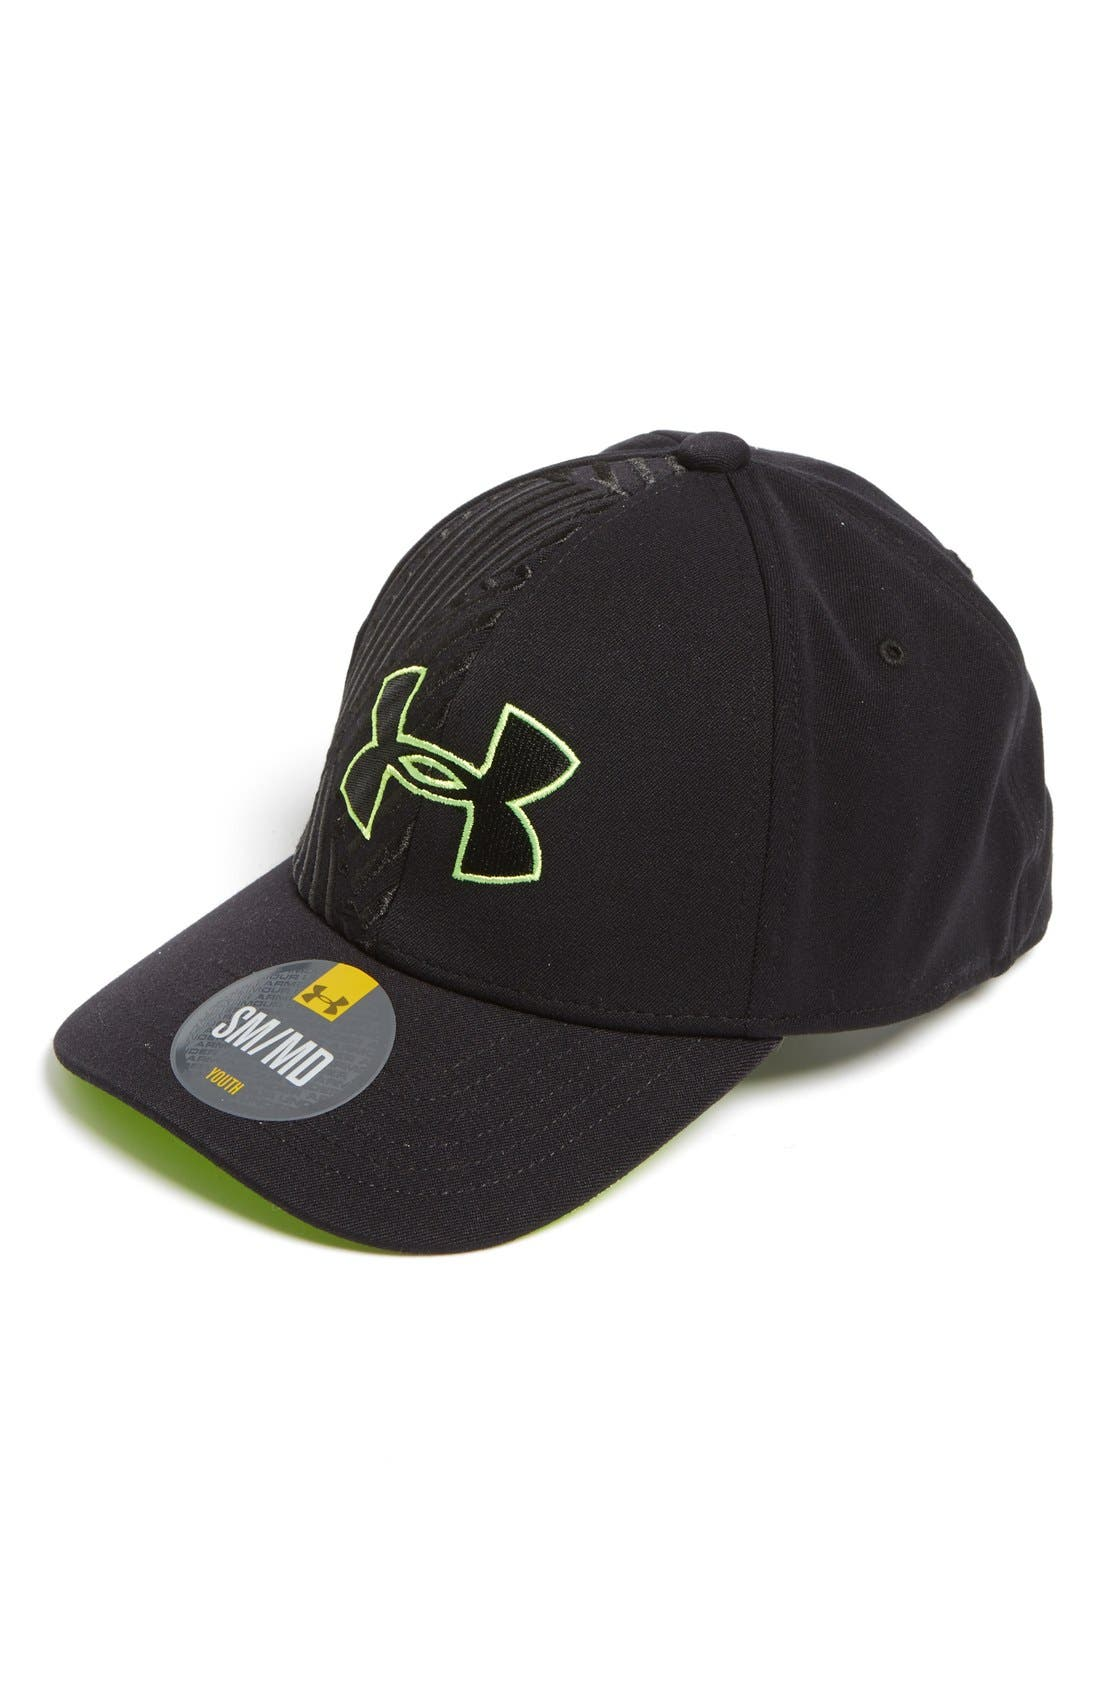 Alternate Image 1 Selected - BIG LOGO STRTCH FIT CAP